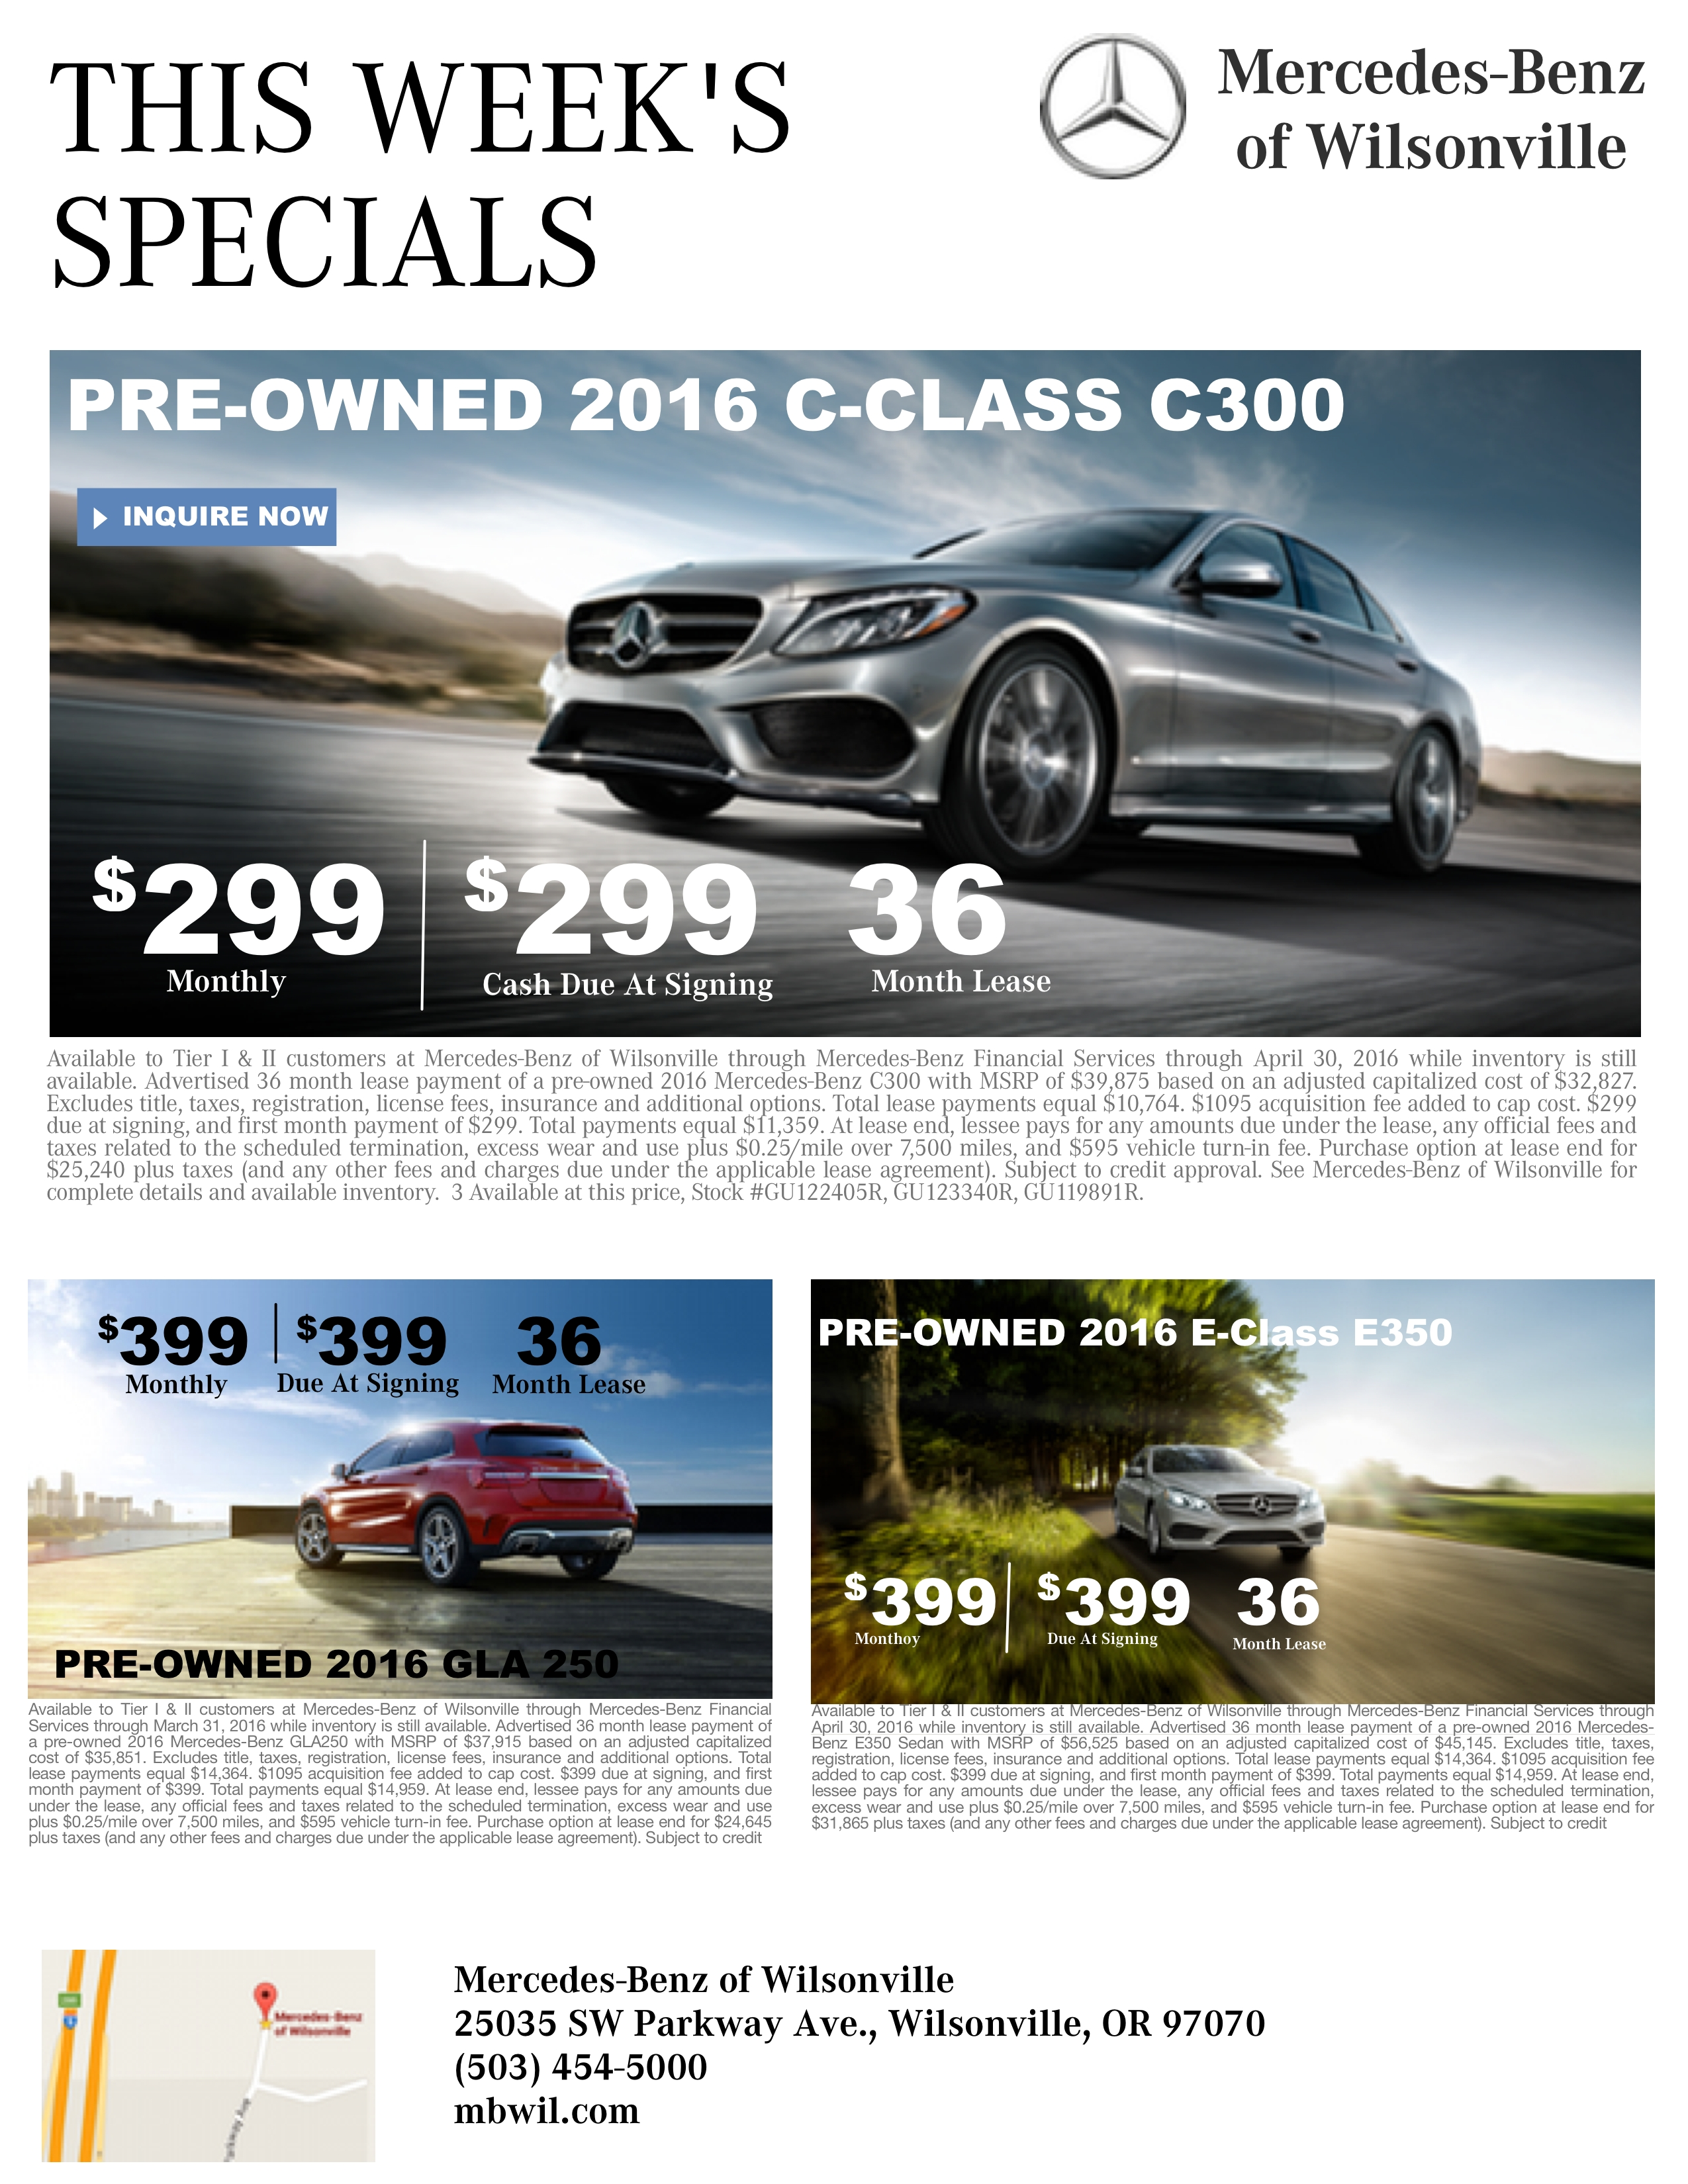 benz metris sprinter dealership mercedes benz of wilsonville. Cars Review. Best American Auto & Cars Review